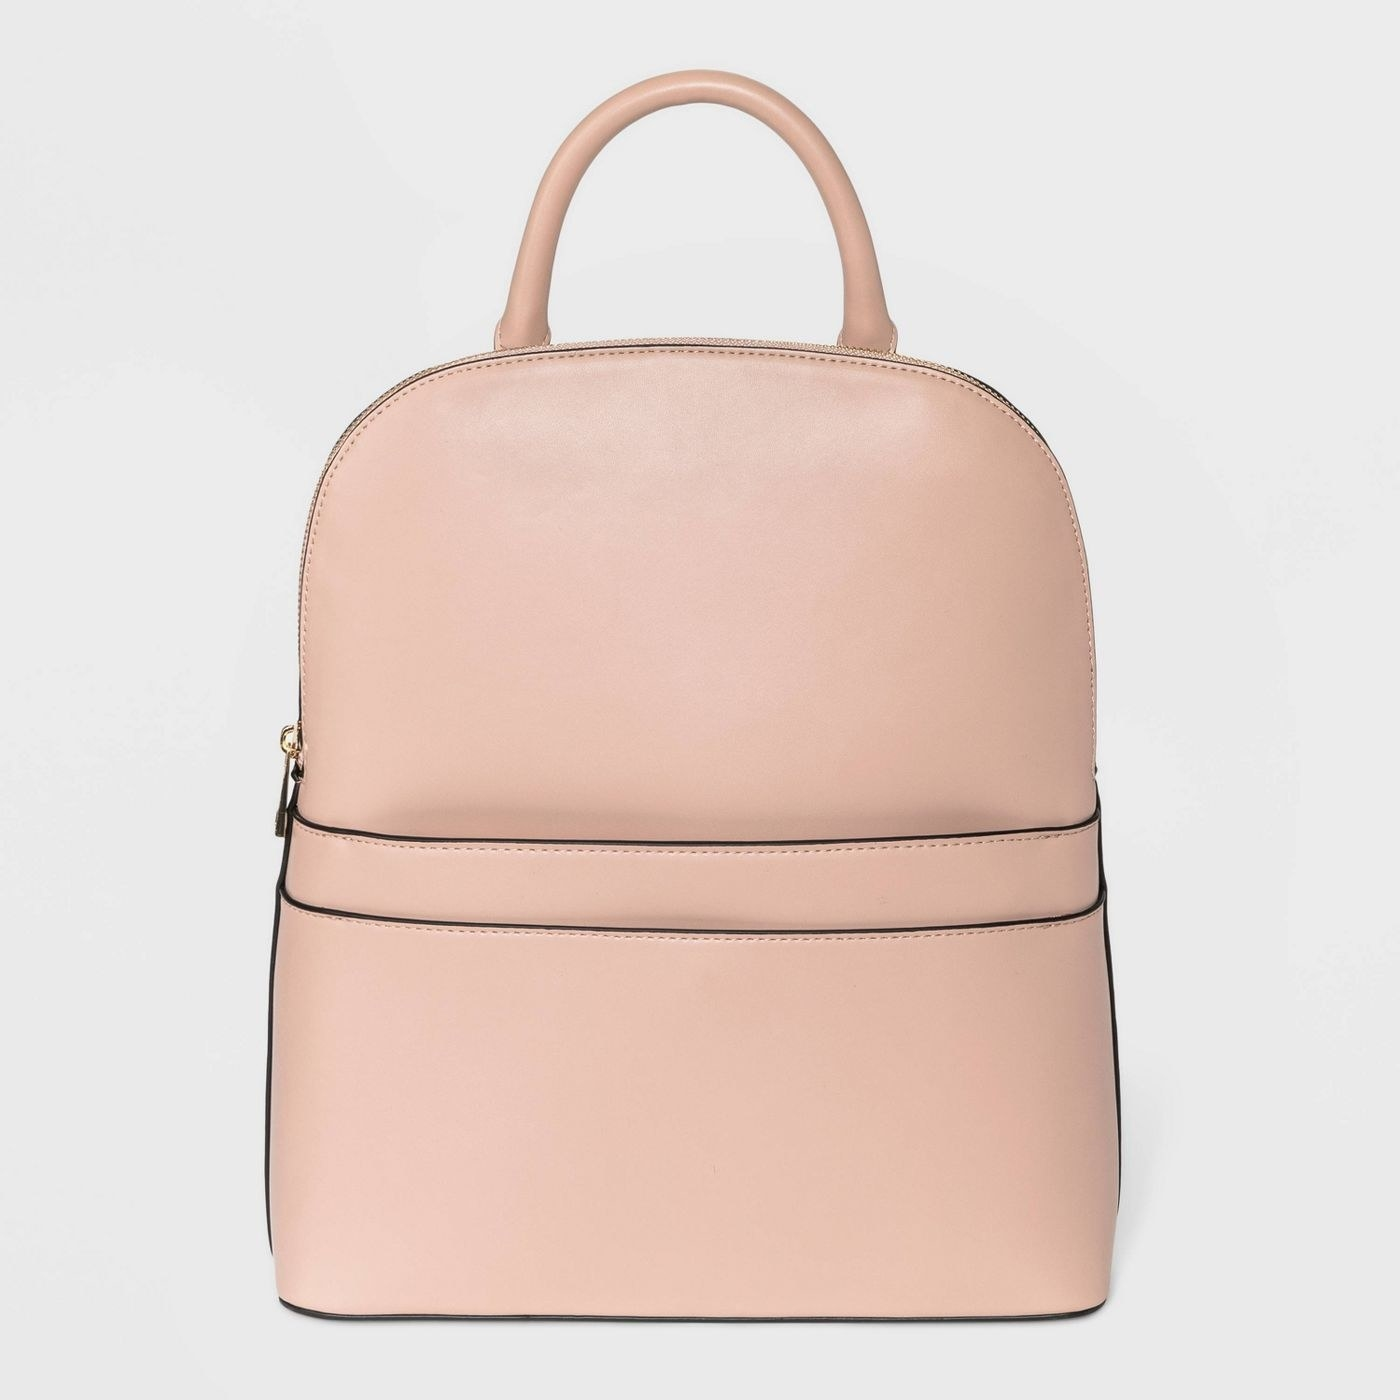 The backpack in pink